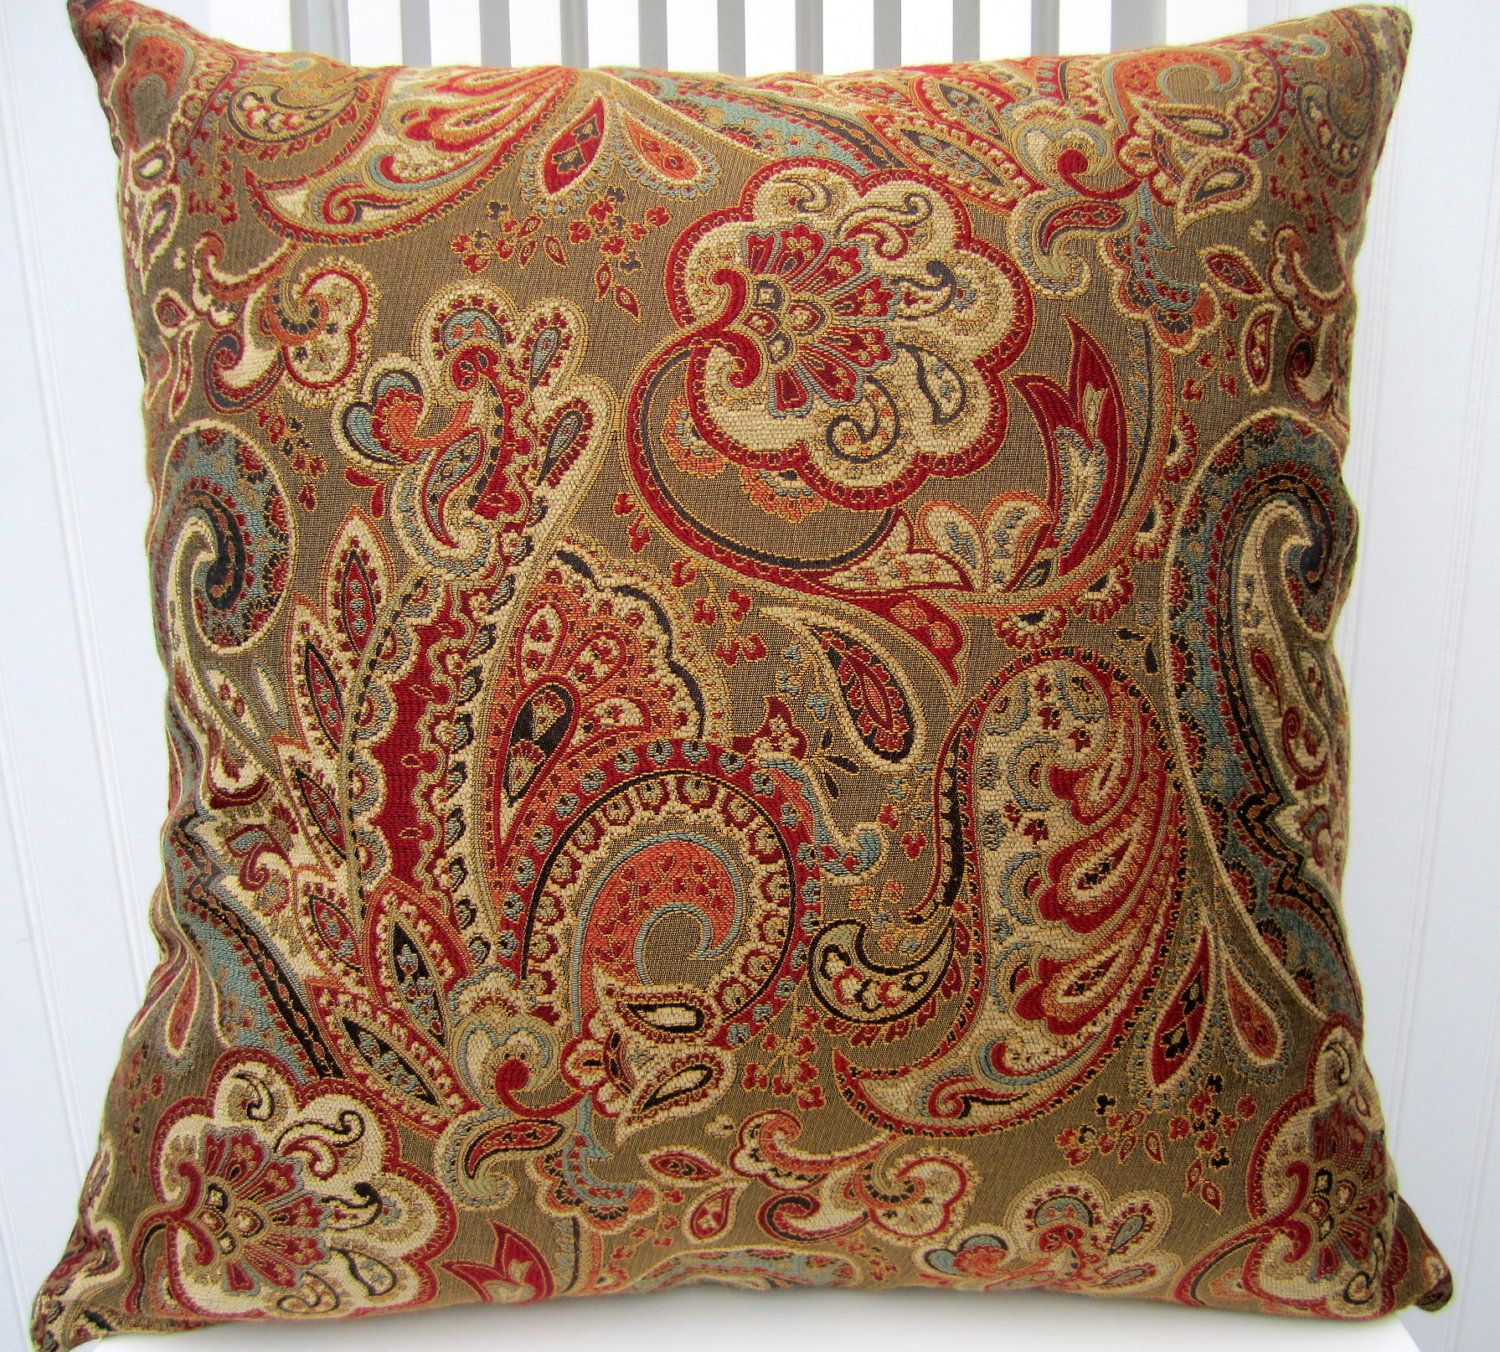 Paisley Decorative Pillow Covers 20x20